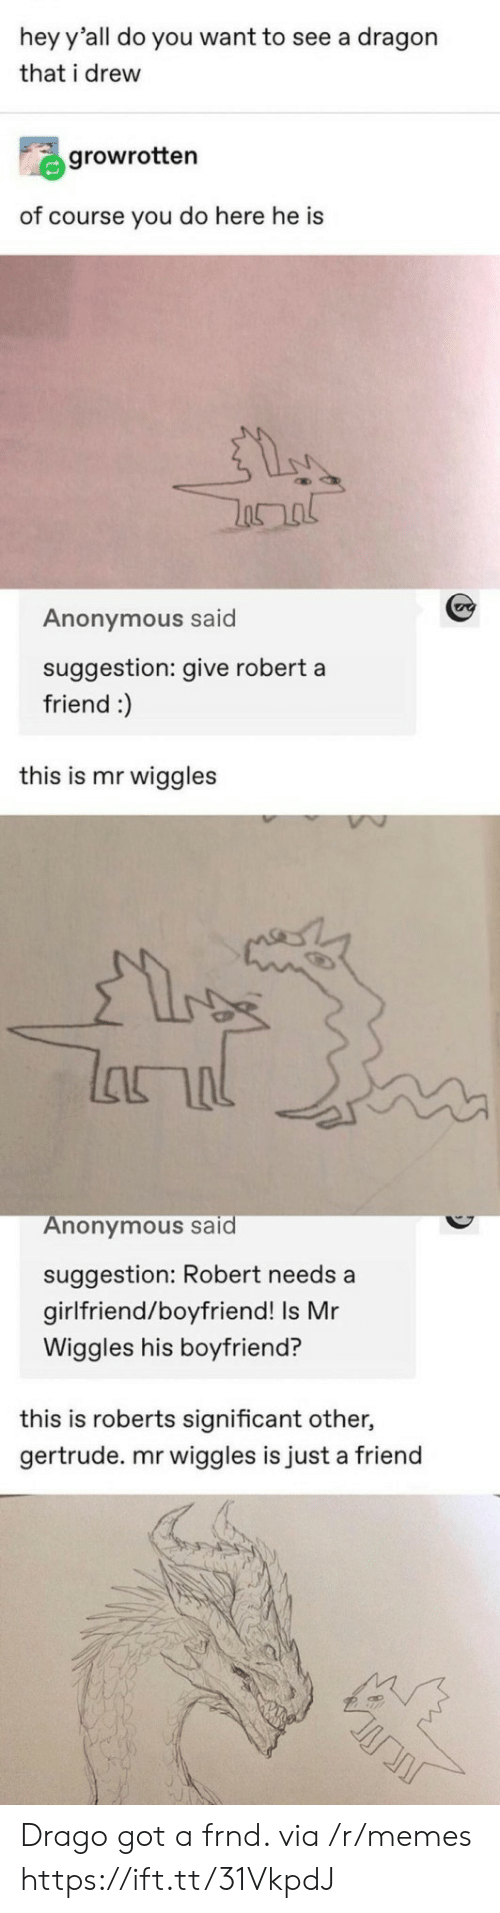 significant other: hey y'all do you want to see a dragon  that i drew  growrotten  of course you do here he is  Anonymous said  suggestion: give robert a  friend :)  this is mr wiggles  lanal  Anonymous said  suggestion: Robert needs a  girlfriend/boyfriend! Is Mr  Wiggles his boyfriend?  this is roberts significant other,  gertrude. mr wiggles is just a friend Drago got a frnd. via /r/memes https://ift.tt/31VkpdJ